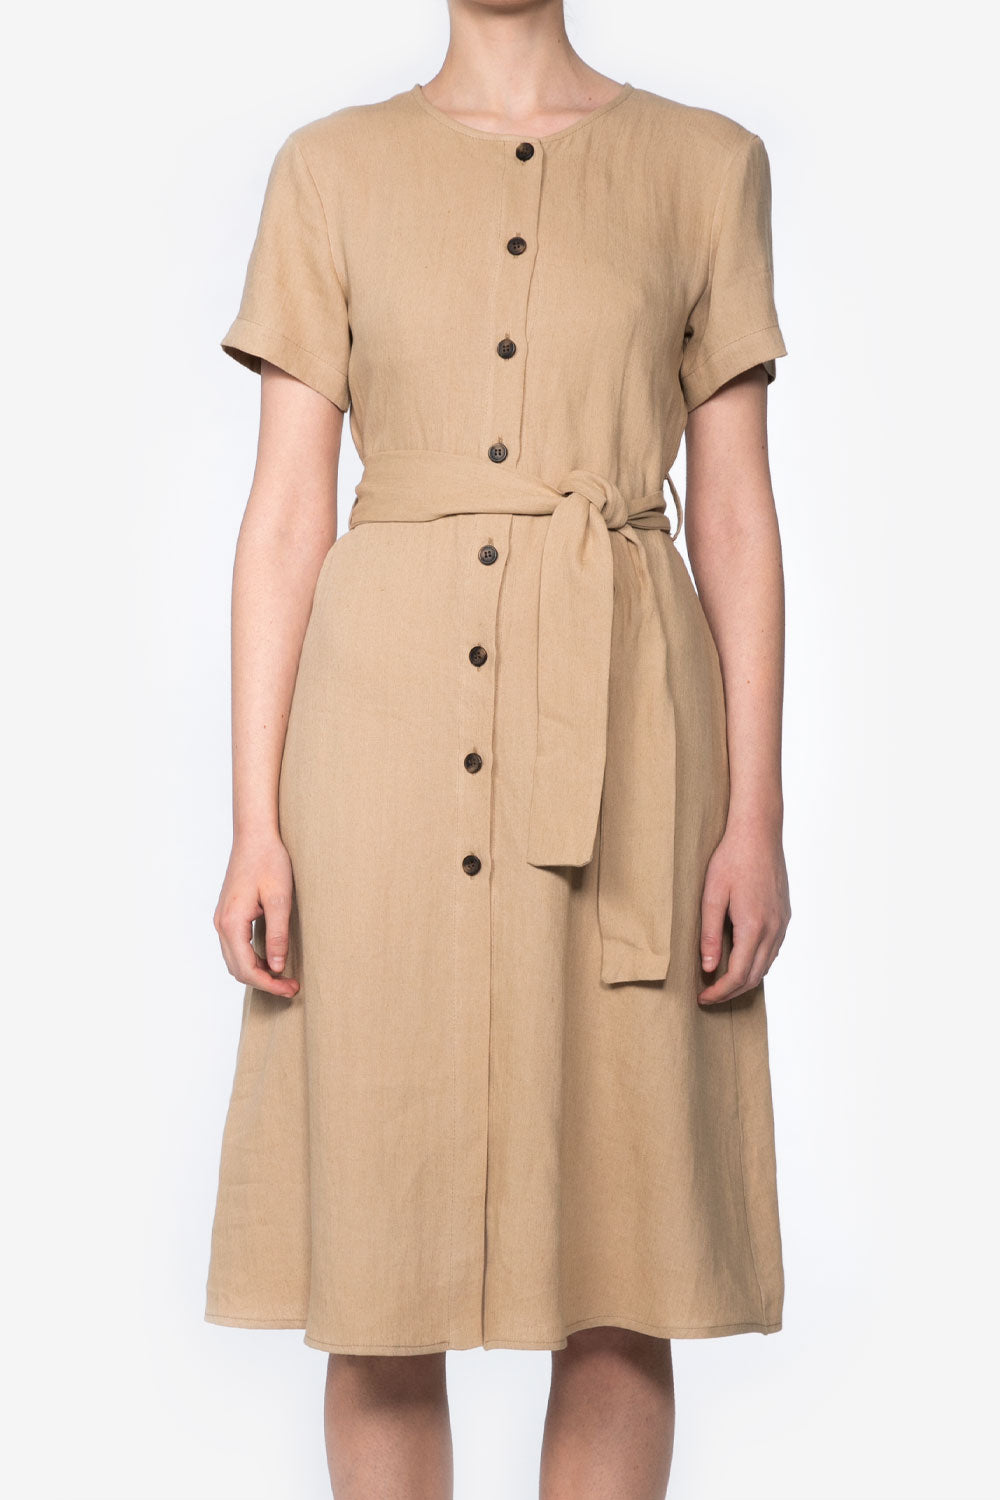 Safari Dress in Sand Linen